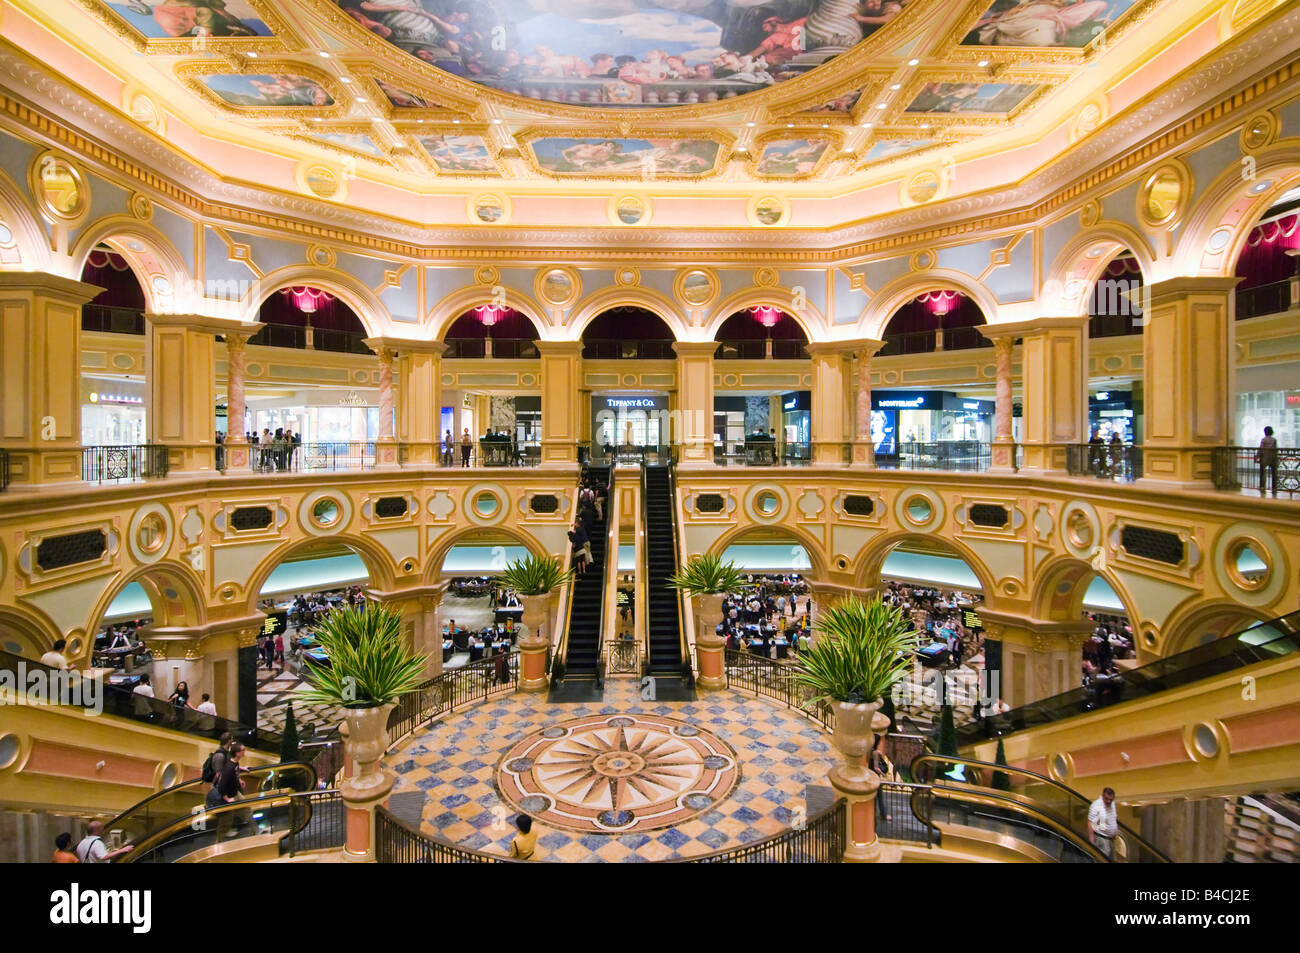 Interior of the venetian macao hotel and casino macau stock photo interior of the venetian macao hotel and casino macau thecheapjerseys Images